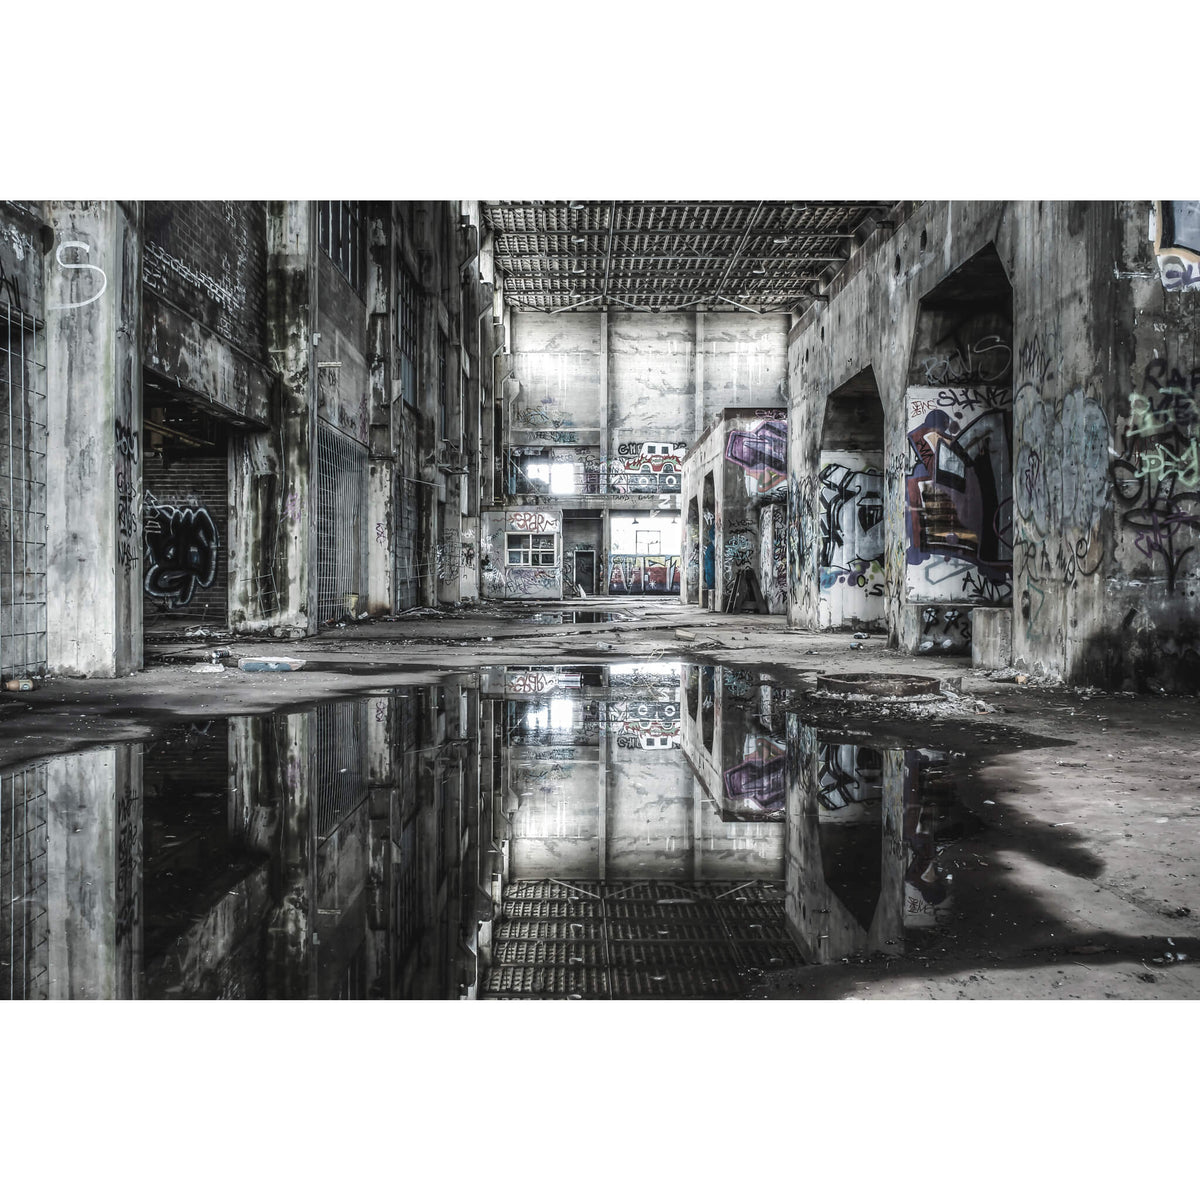 Turbine Hall Basement | Geelong B Power Station Fine Art Print - Lost Collective Shop